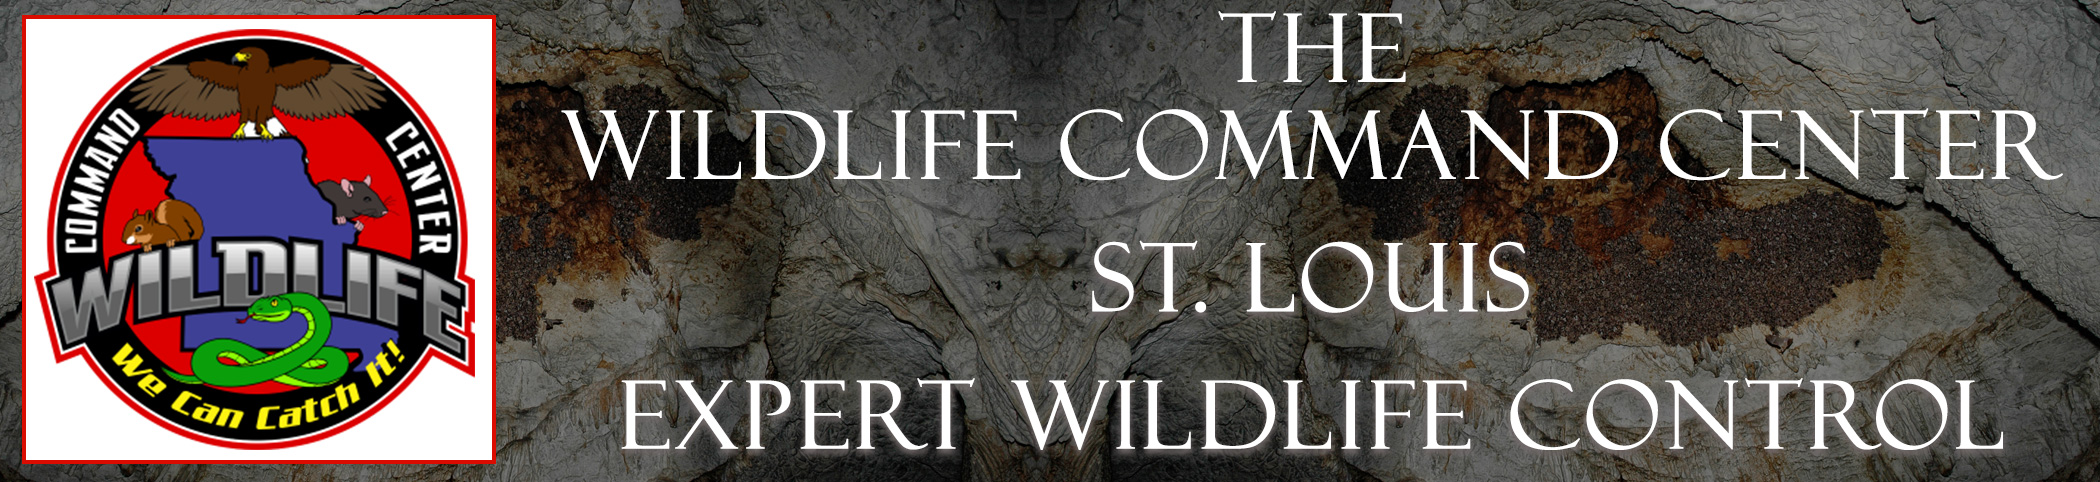 The Wildlife Command Center St. Louis Missouri Image